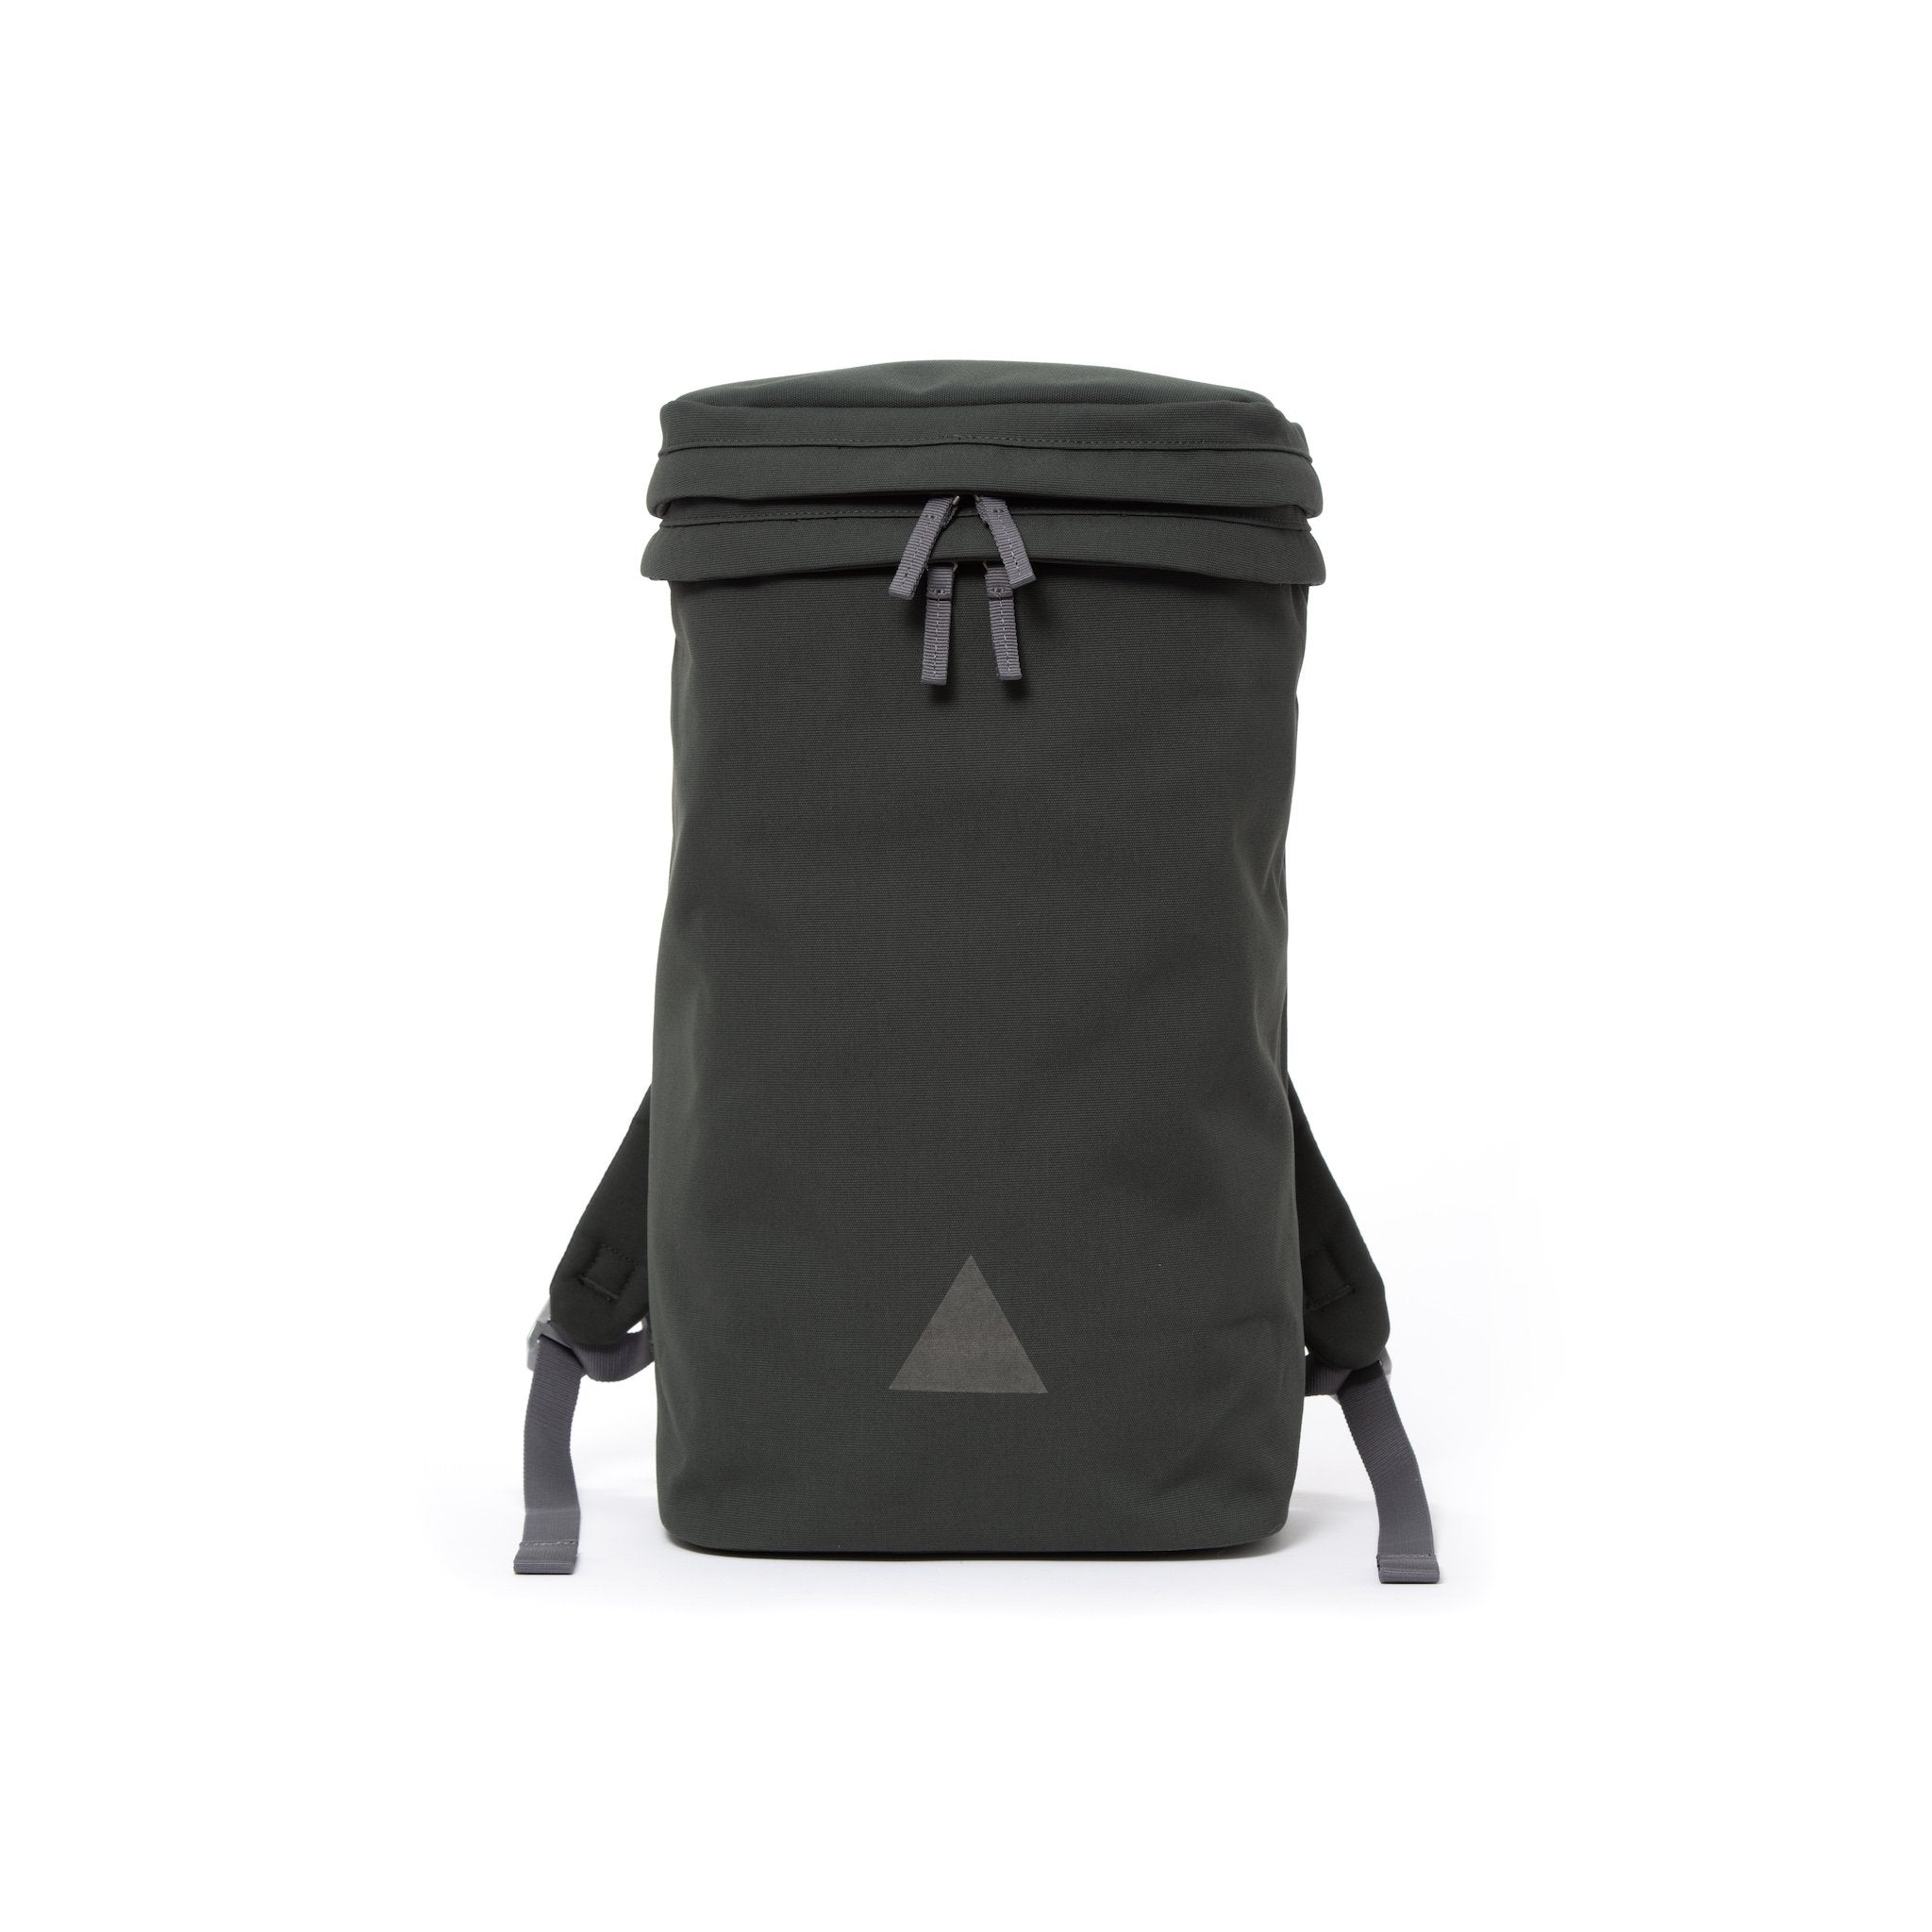 Grey canvas backpack with zip opening, padded shoulder straps and triangle logo.